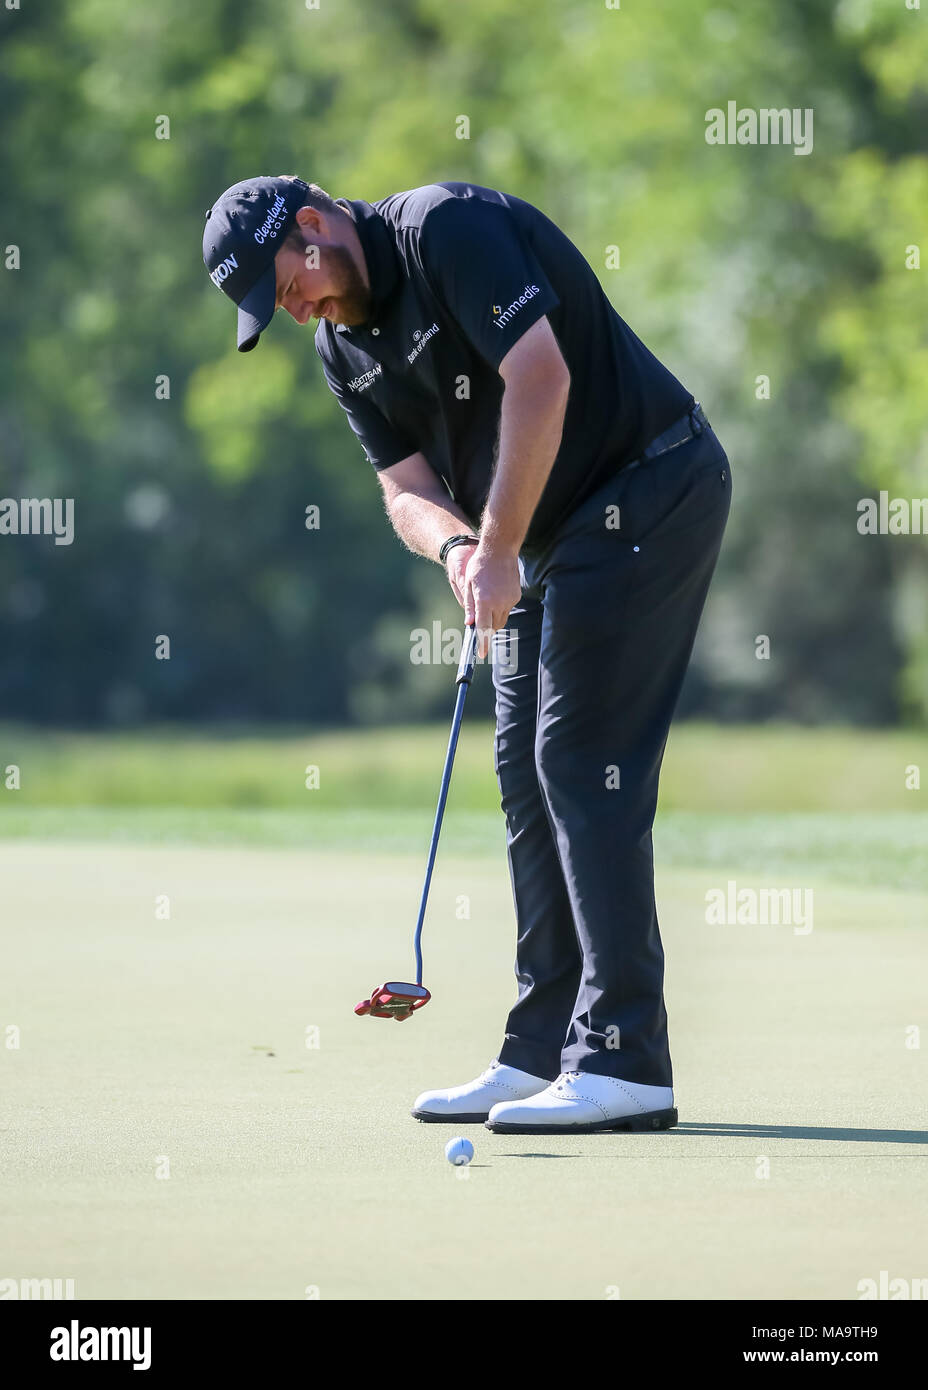 Humble, Texas, USA. 30th Mar, 2018. Shane Lowry (IRL) watches his putt on 7 during Round 2 of the Houston Open on March 30, 2018 at Golf Club of Houston in Humble, Texas. Credit: Action Plus Sports/Alamy Live News Stock Photo